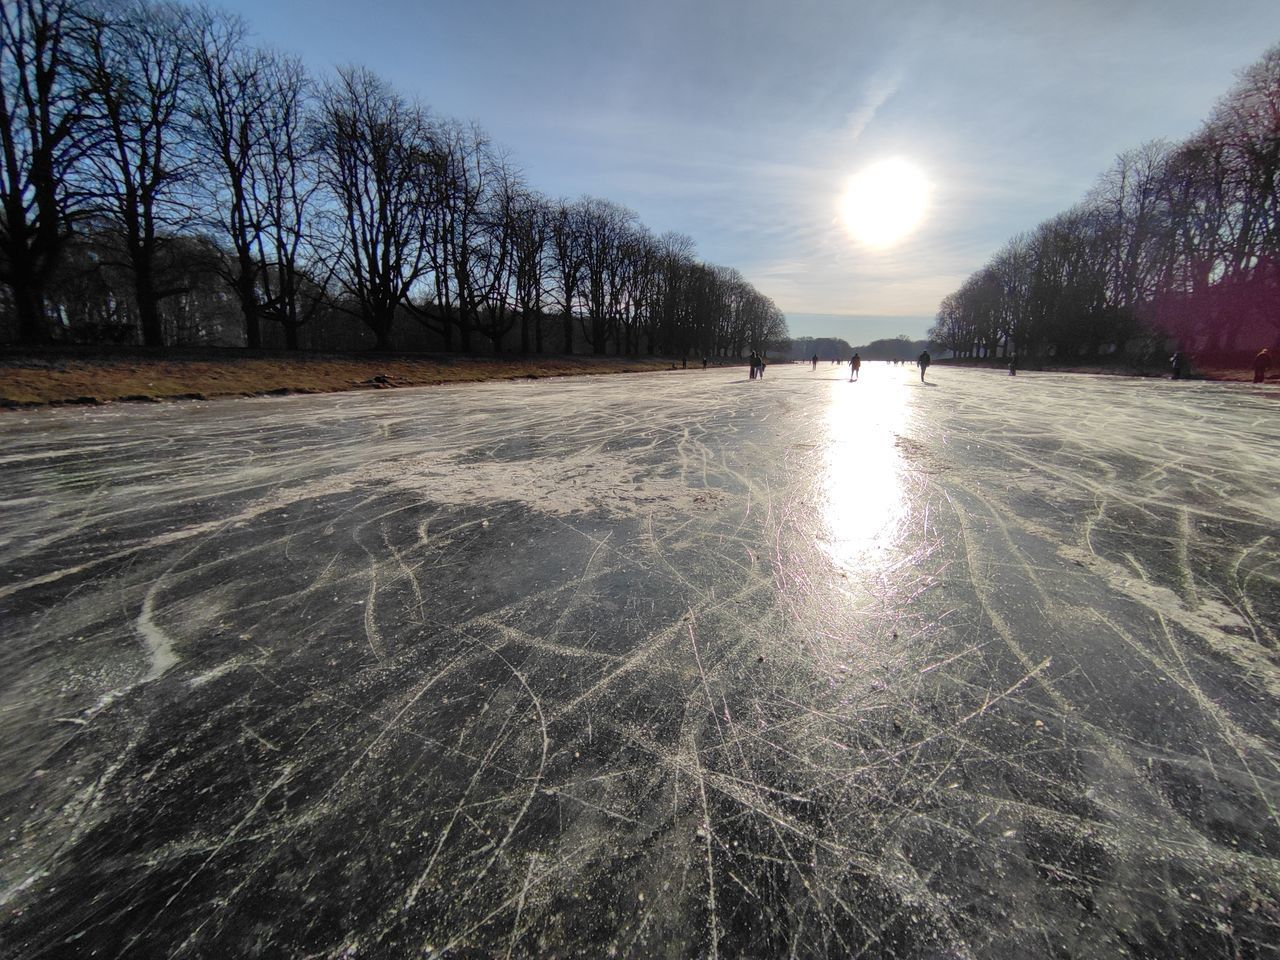 SCENIC VIEW OF FROZEN LAKE AGAINST SKY AT SUNSET